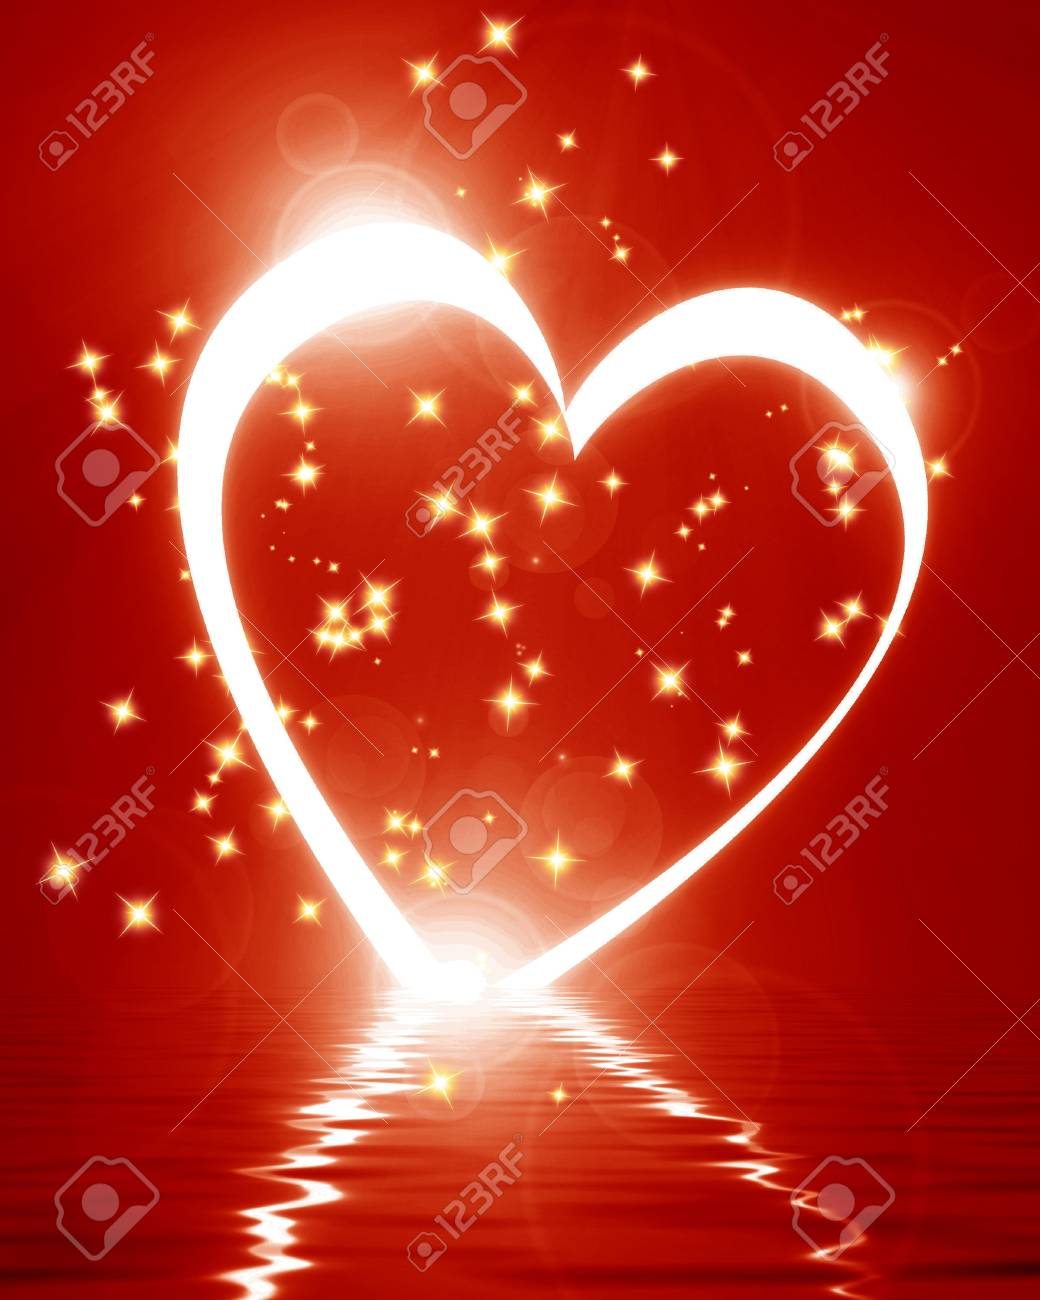 Reflected heart with some soft glowing highlights Stock Photo - 15612654